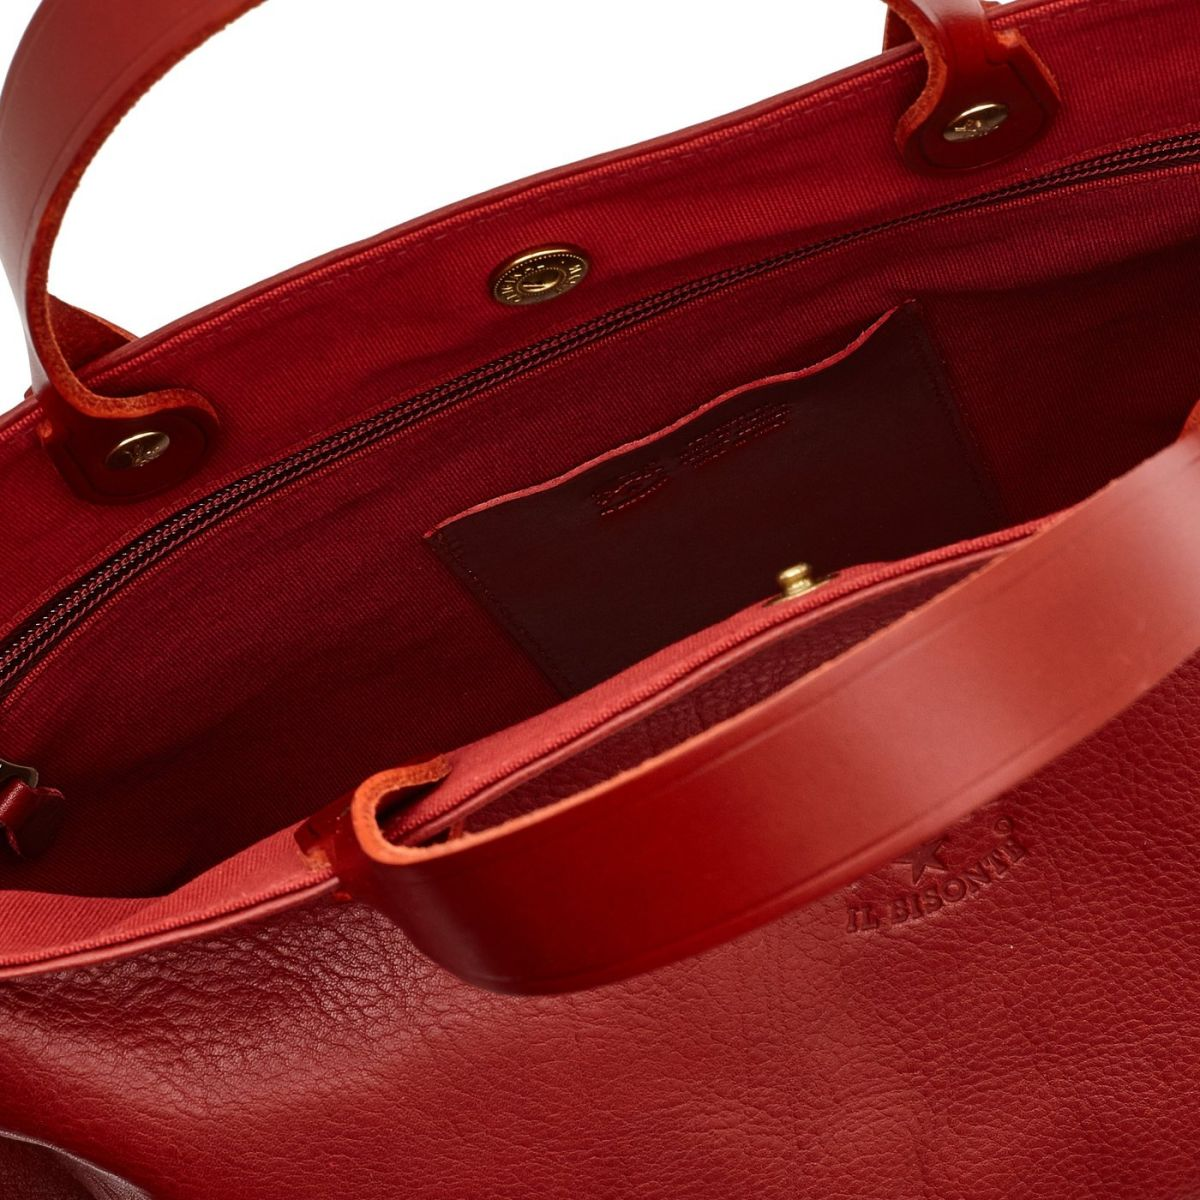 Women's Handbag in Cowhide Double Leather BTH022 color Red | Details